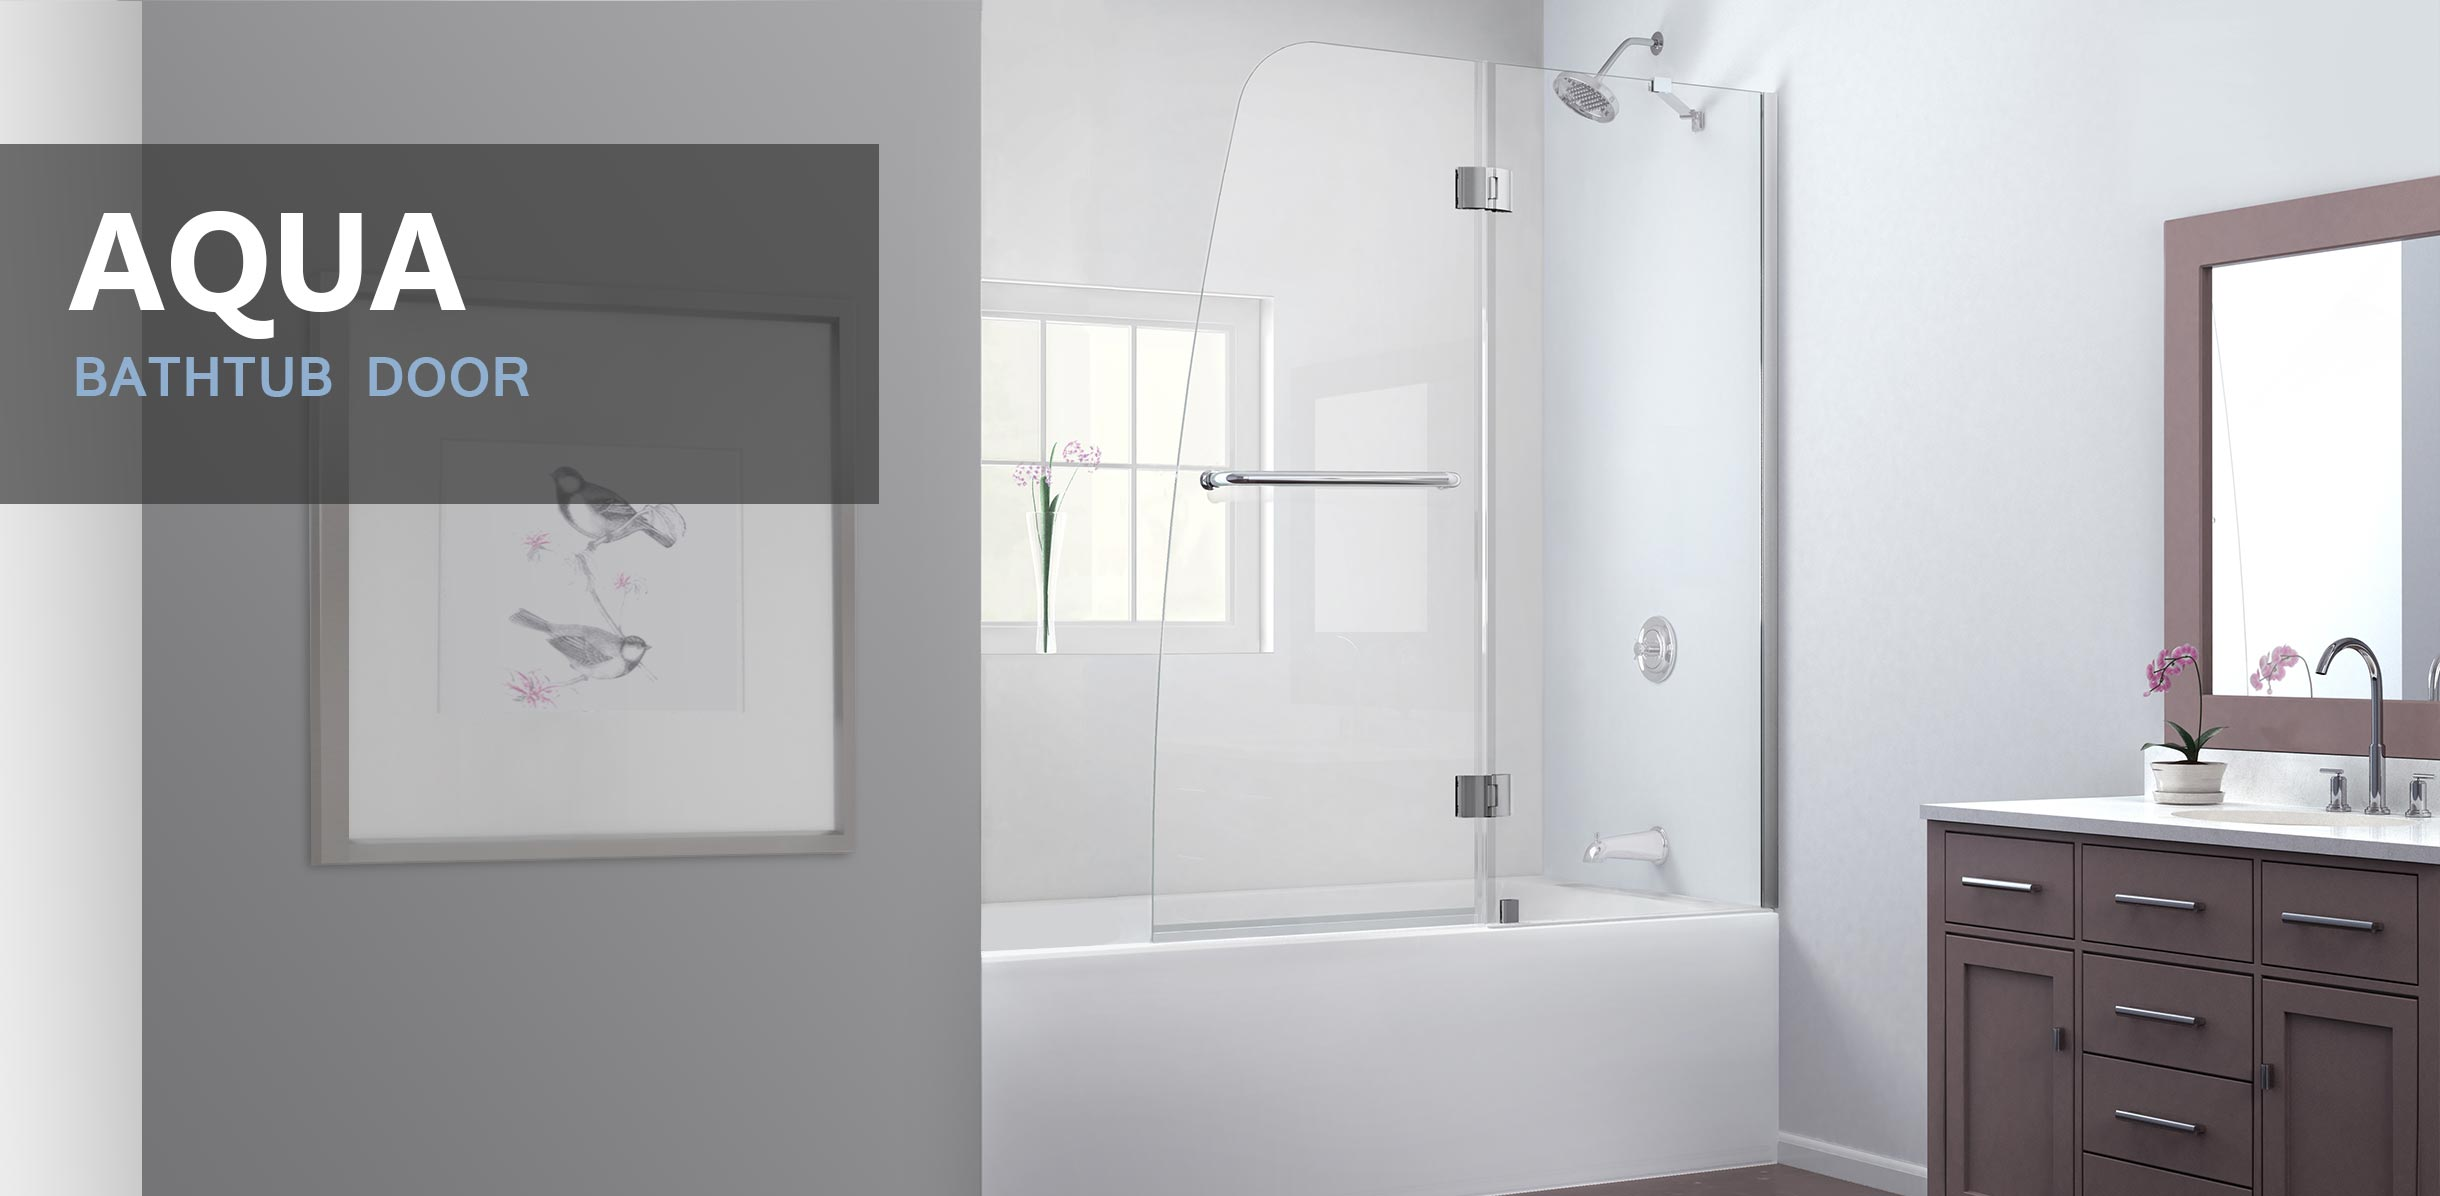 va door dc sliding shower repair md ideas doors installation glass